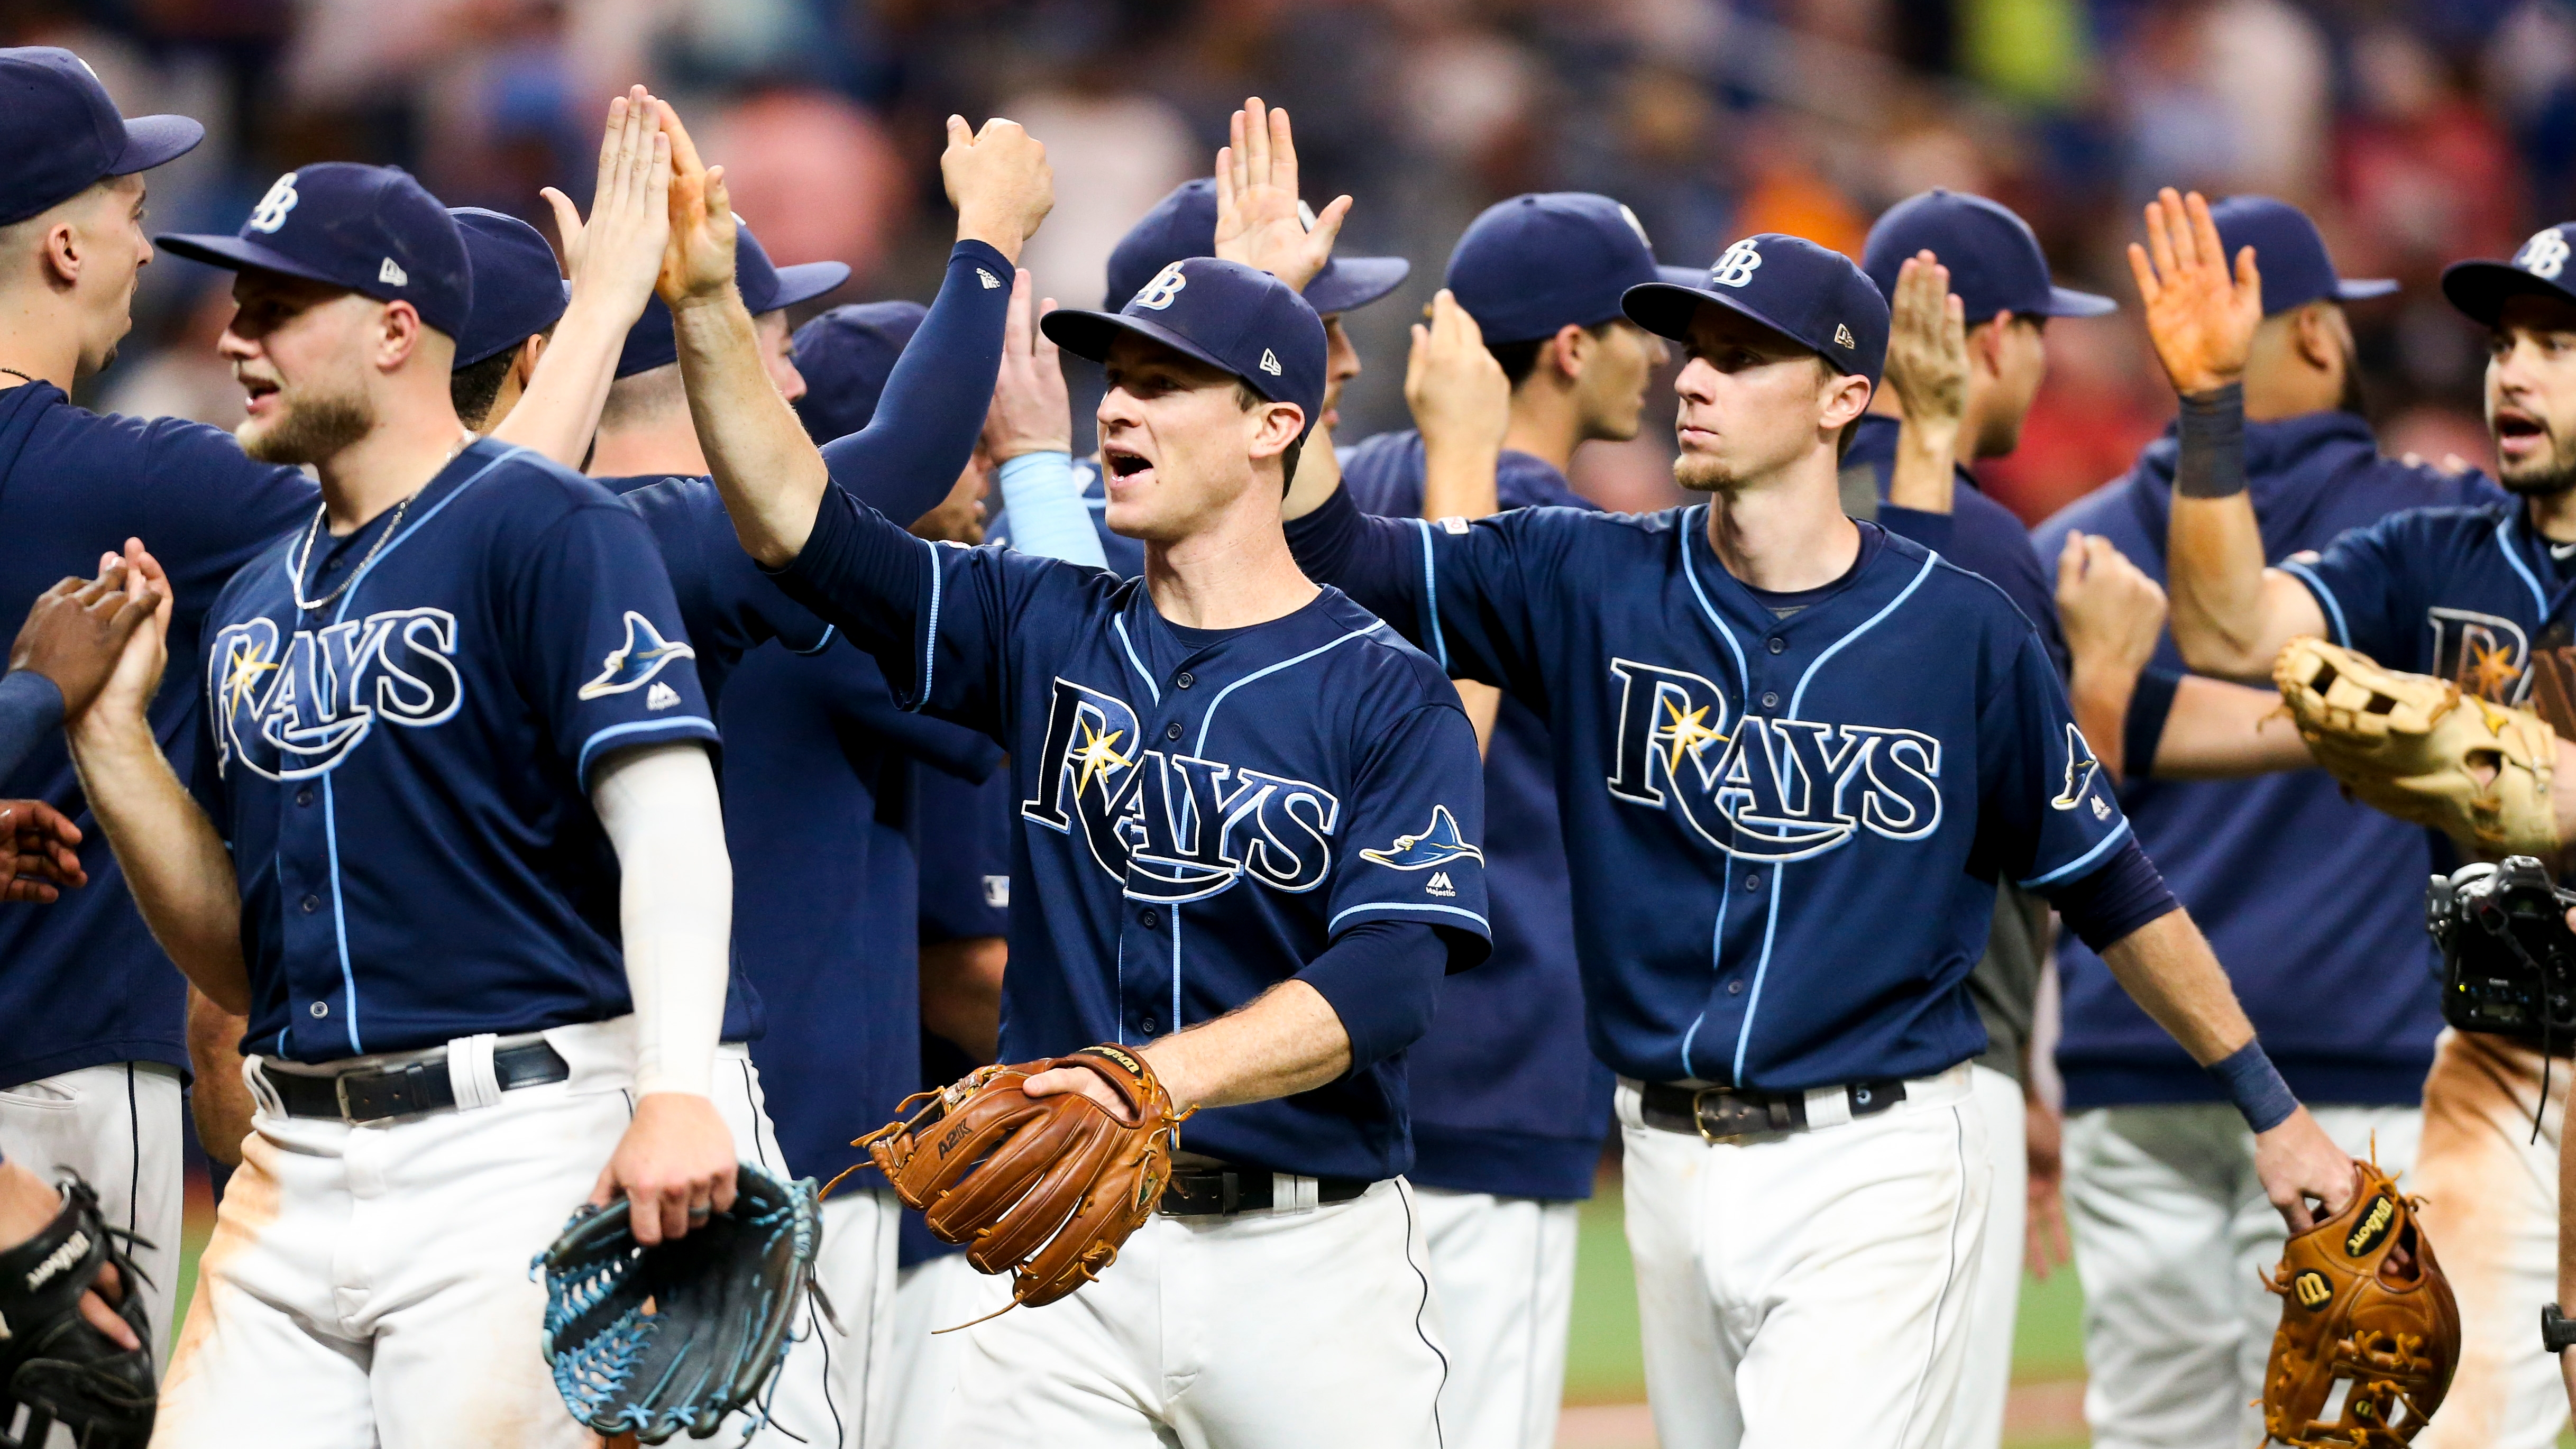 tampa bay rays 2019 season in review overtime heroics tampa bay rays 2019 season in review